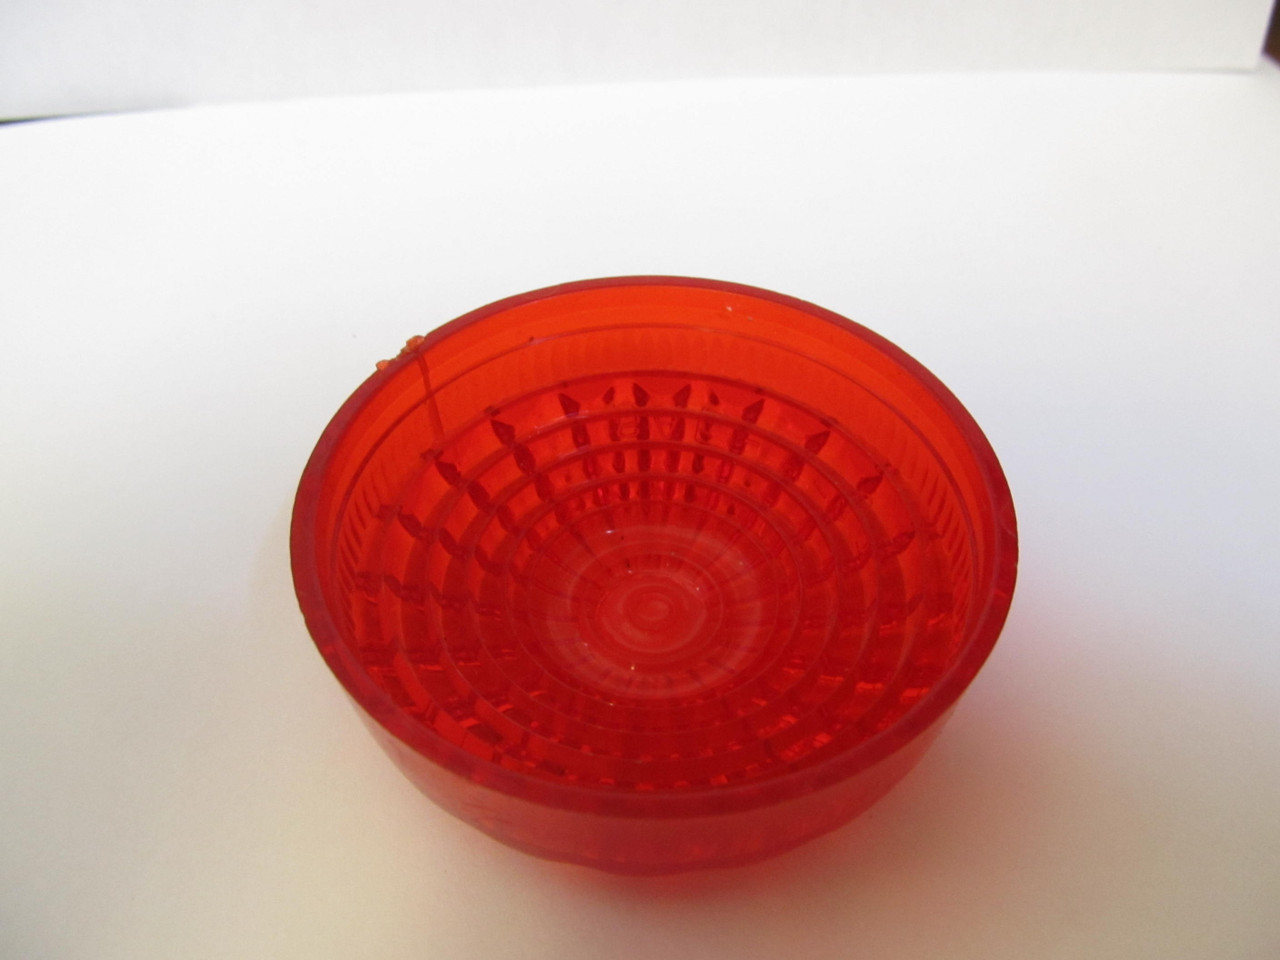 Starburst Clearance Light - Red (Lens Only)